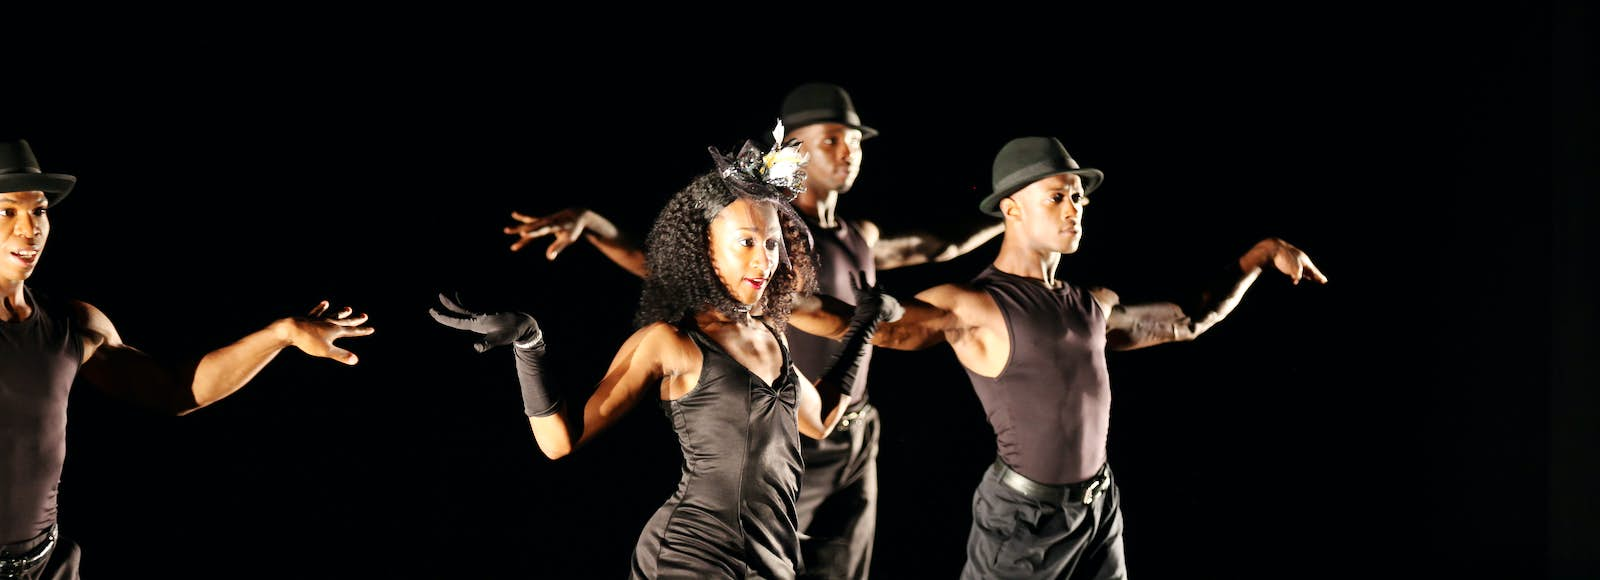 Black history month 2018 top dallas events celebrate black history month in dallas malvernweather Gallery